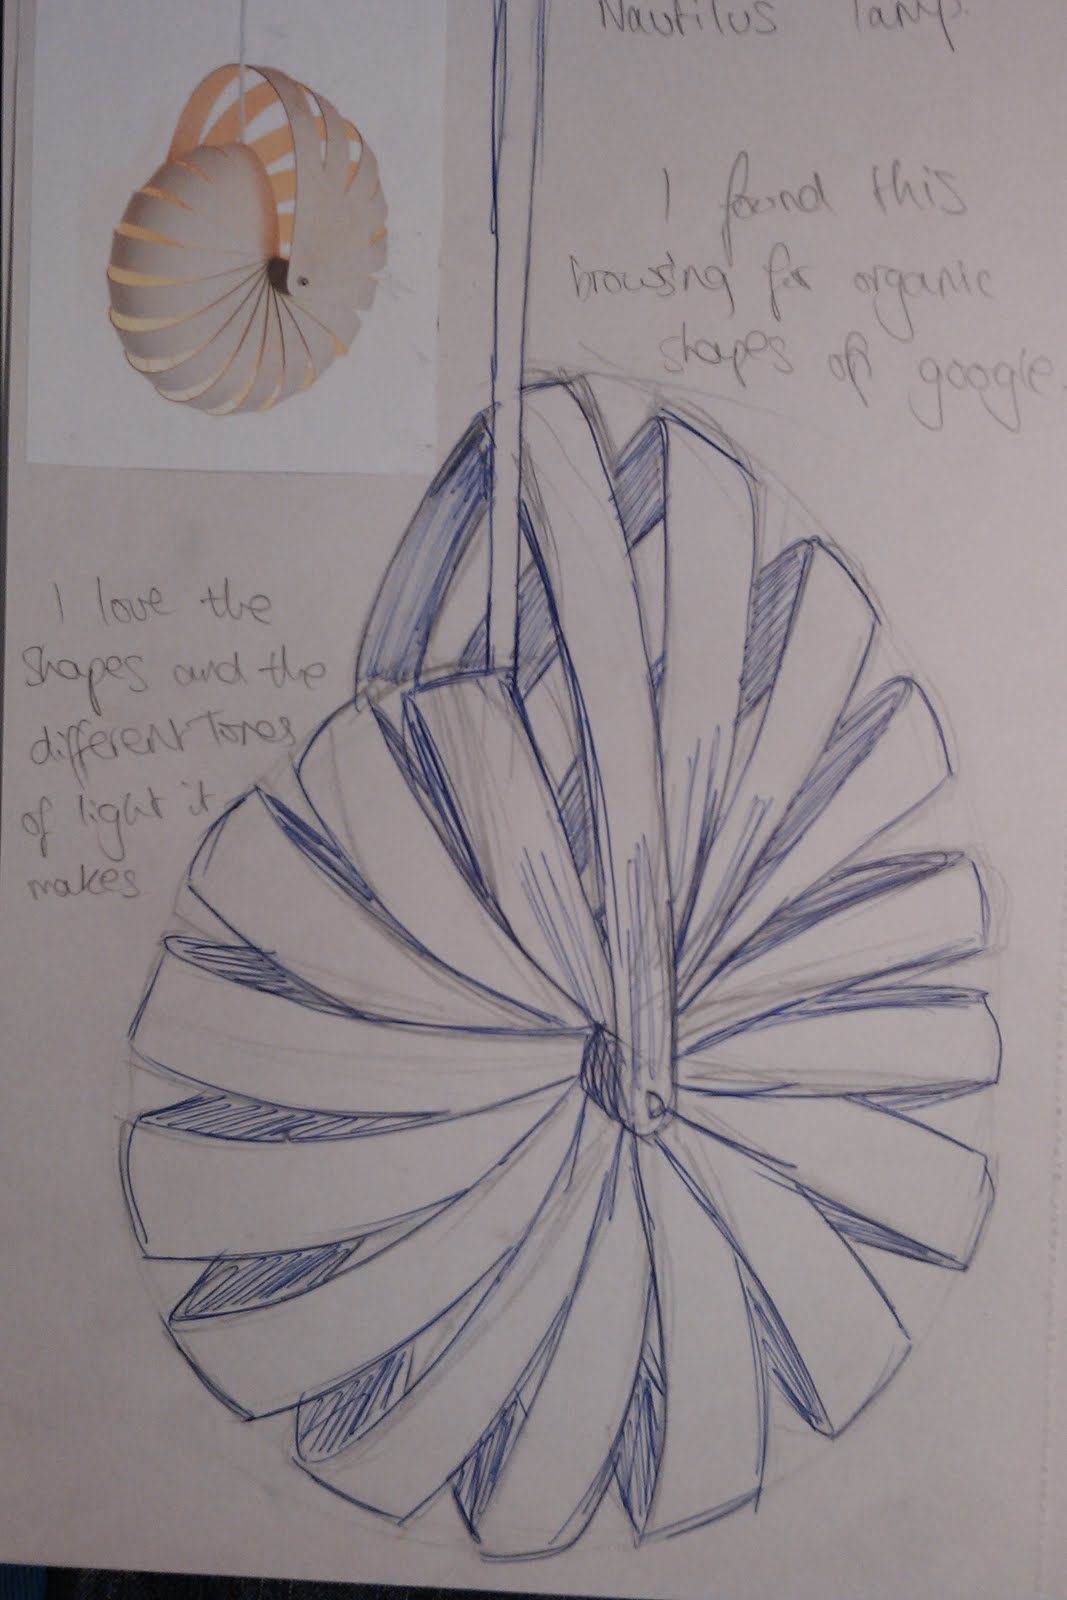 Sketches - This student did a drawing of their finished sculpture.  This practice helps your observational drawing skills.